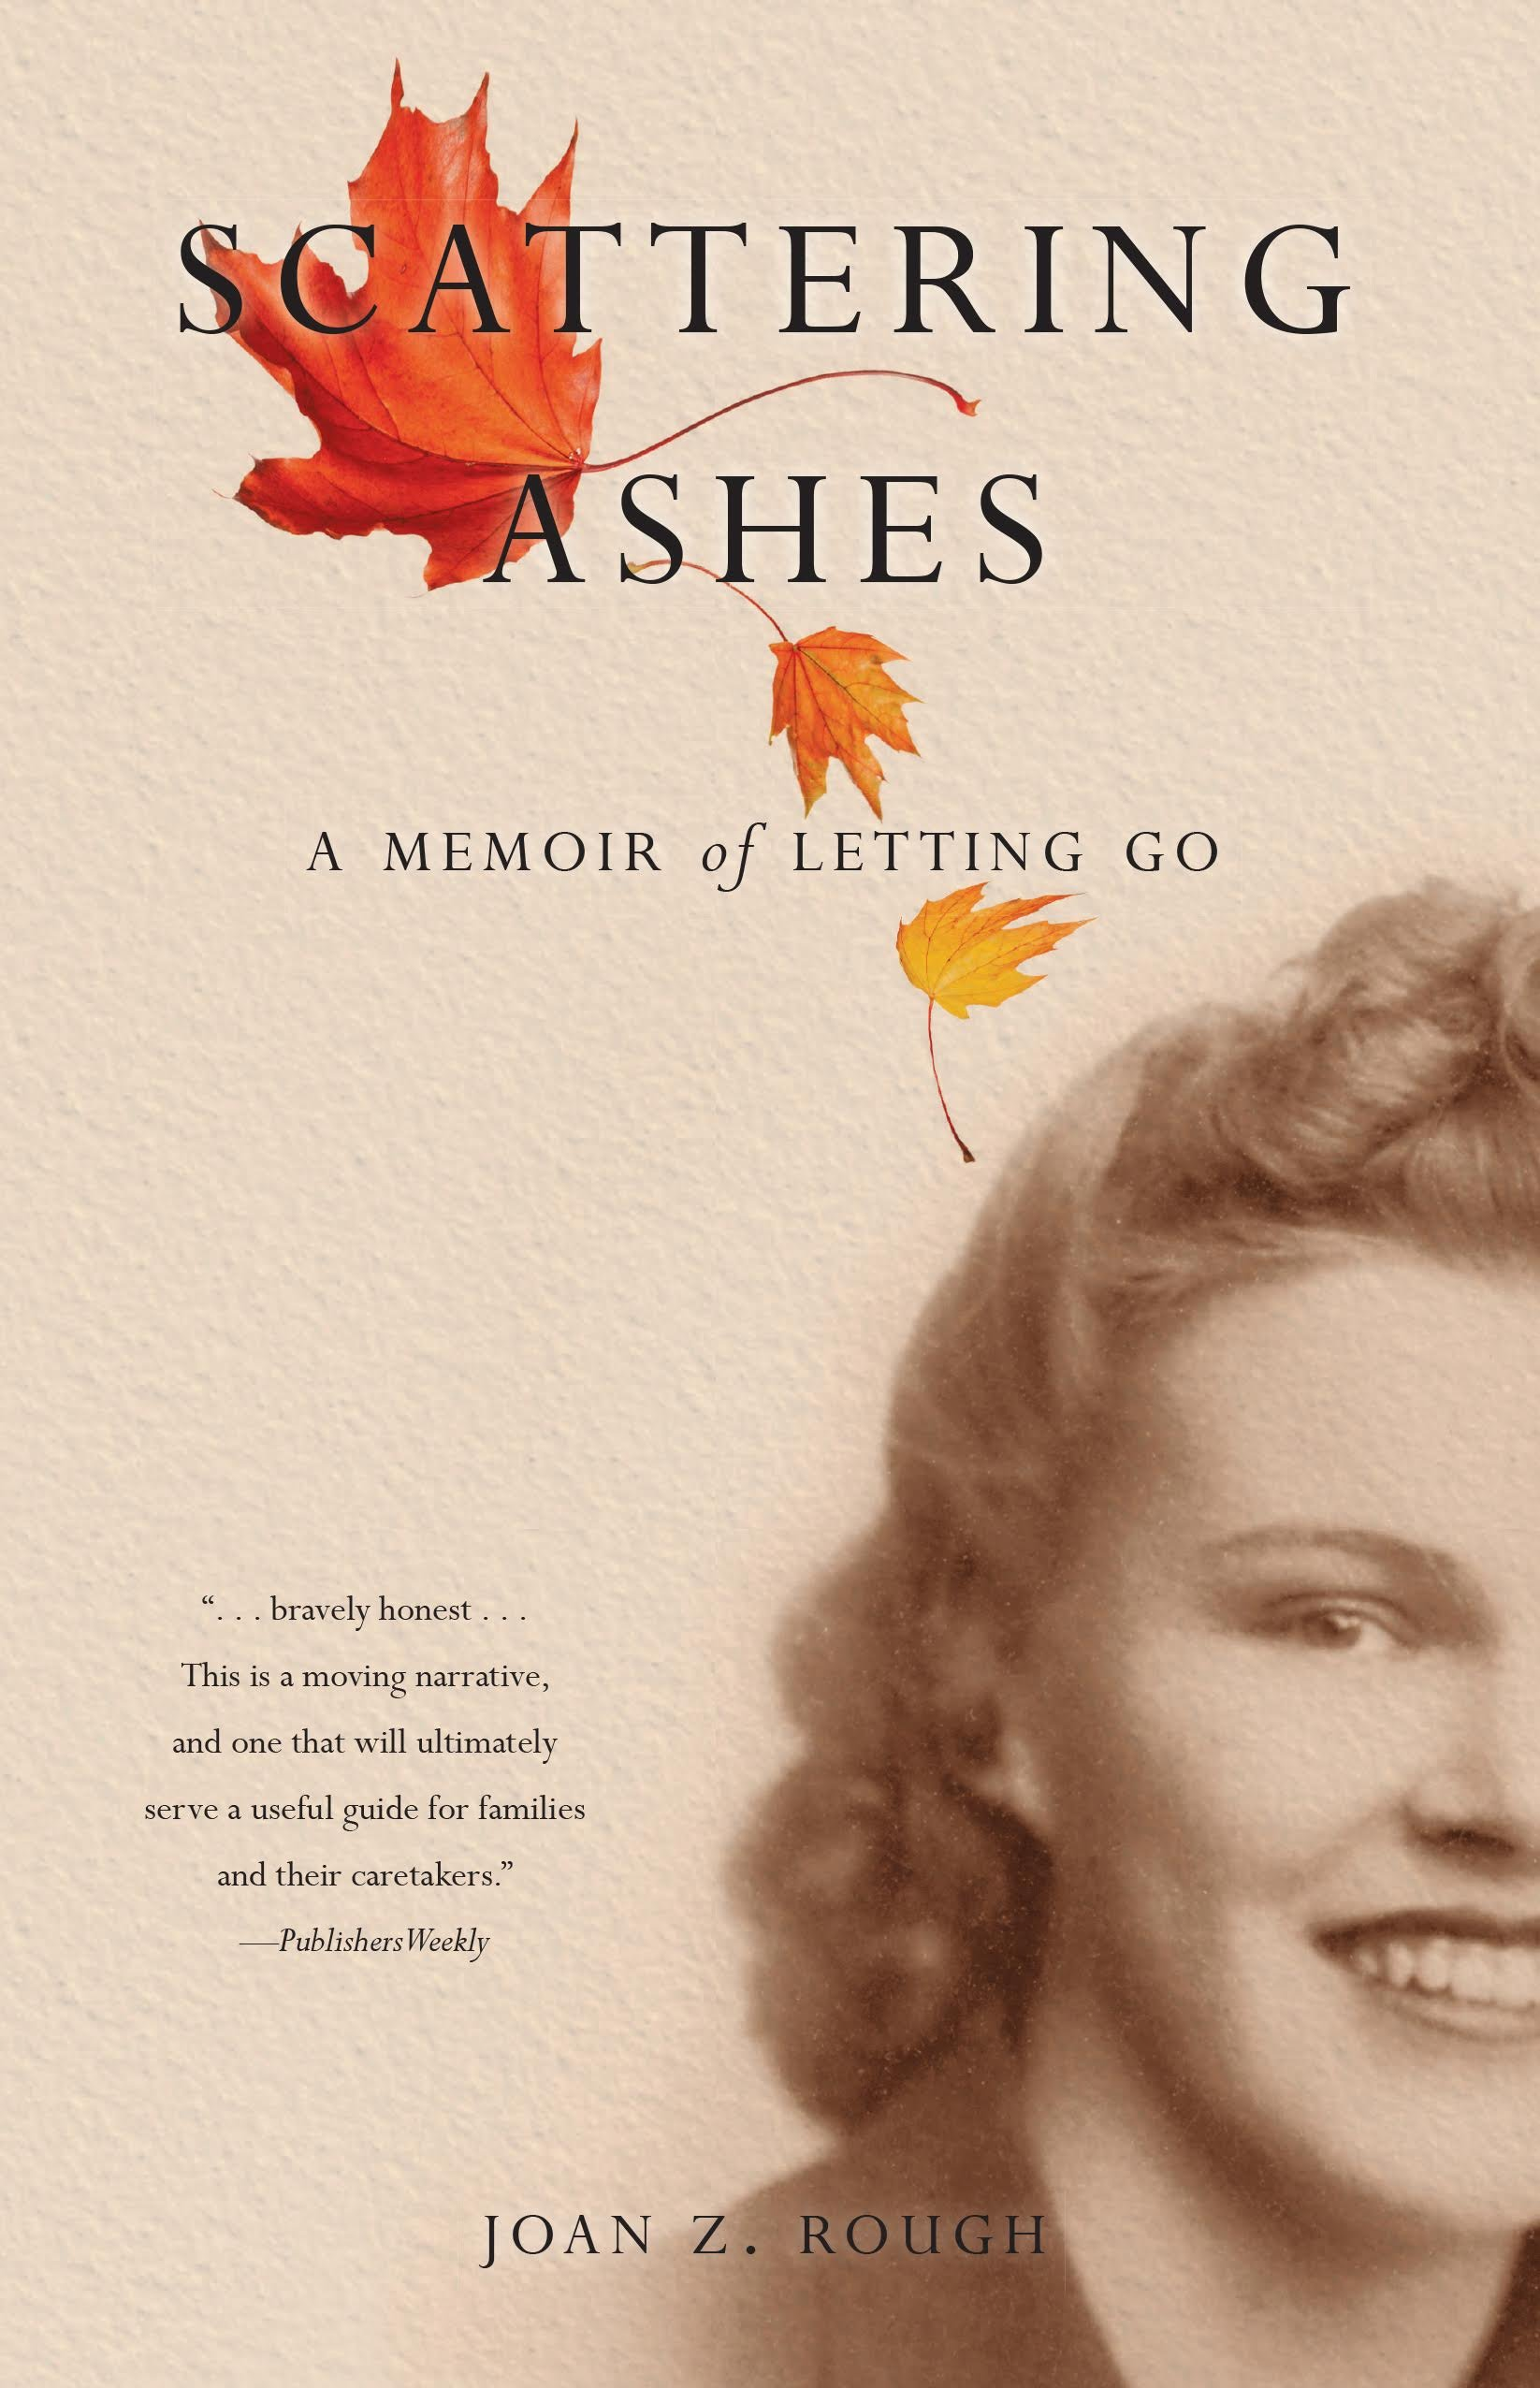 Scattering Ashes: A Memoir of Letting Go: Joan Z. Rough: 9781631520952:  Amazon.com: Books